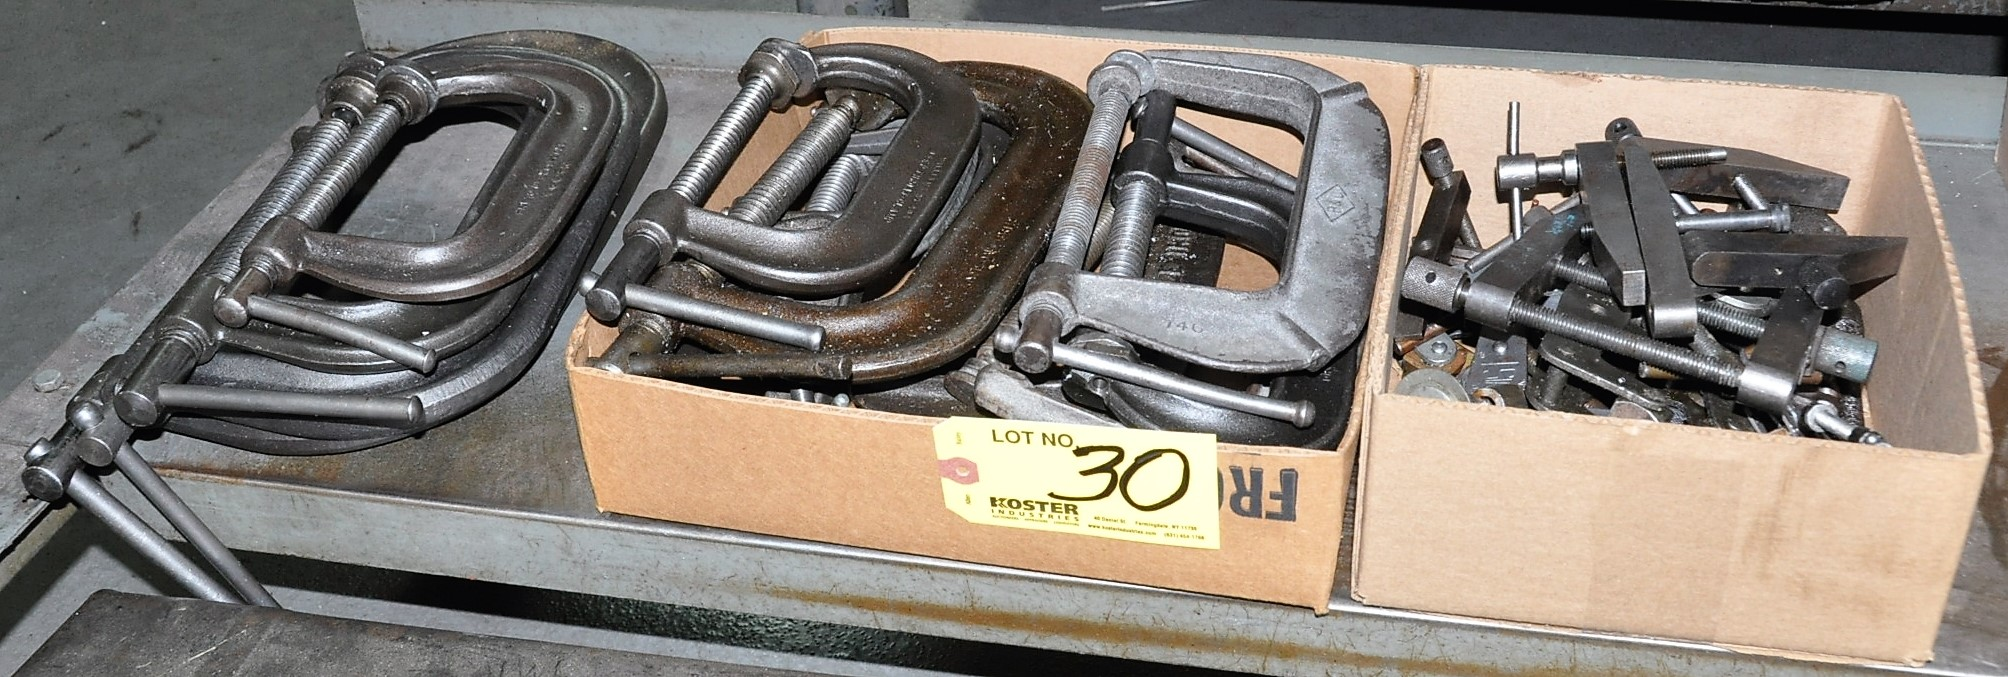 Lot 30 - C CLAMPS, KANT TWIST CLAMPS AND MISC. CLAMPS IN (2) BOXES AND (1) STACK